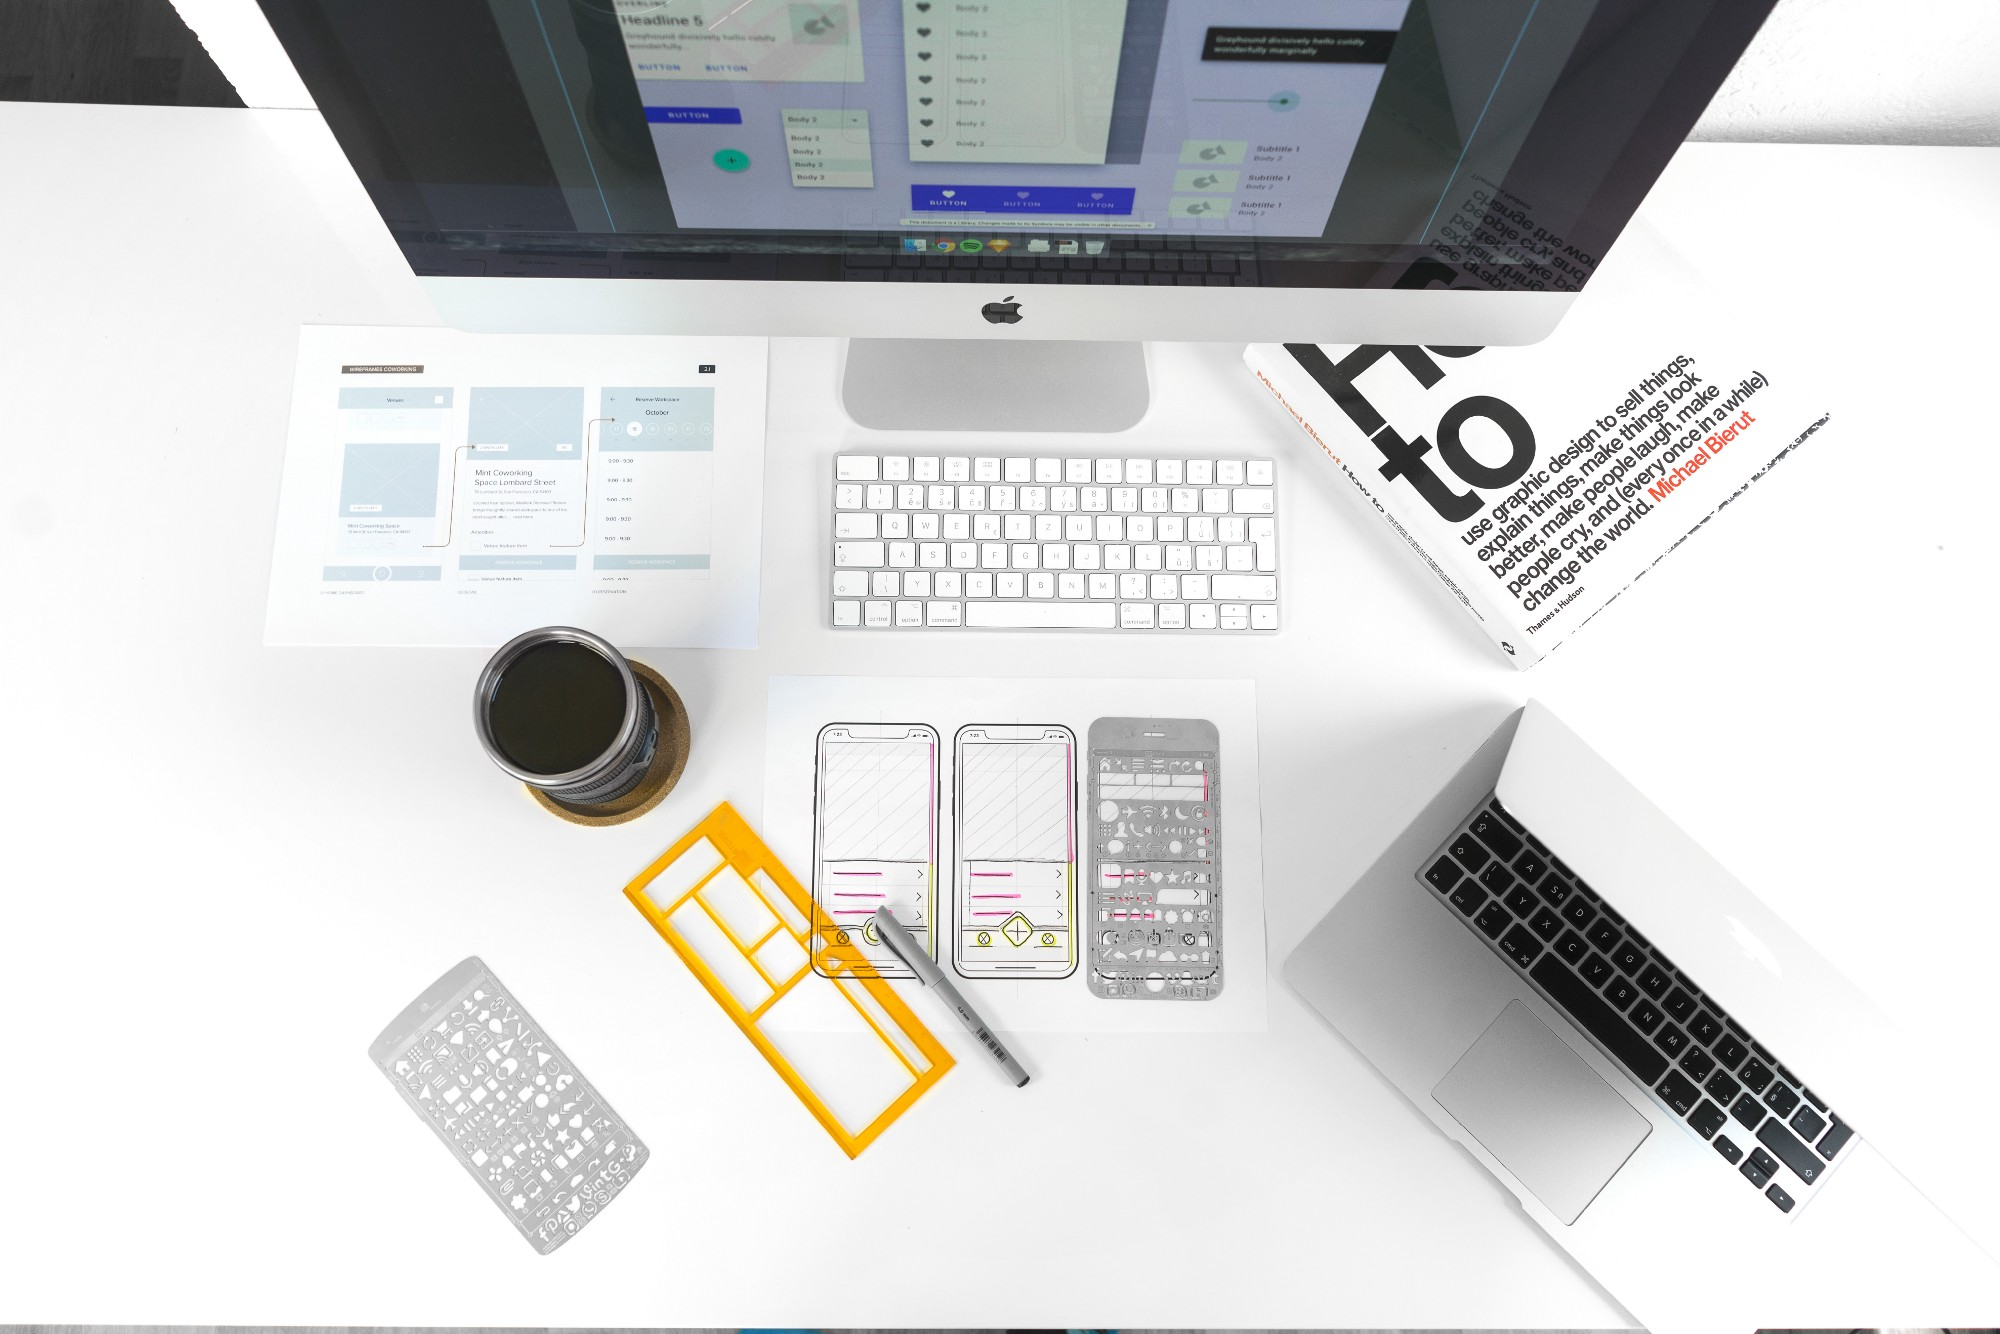 A bird's-eye view of a desk with an iMac, a MacBookPro, and papers scattered across the table.